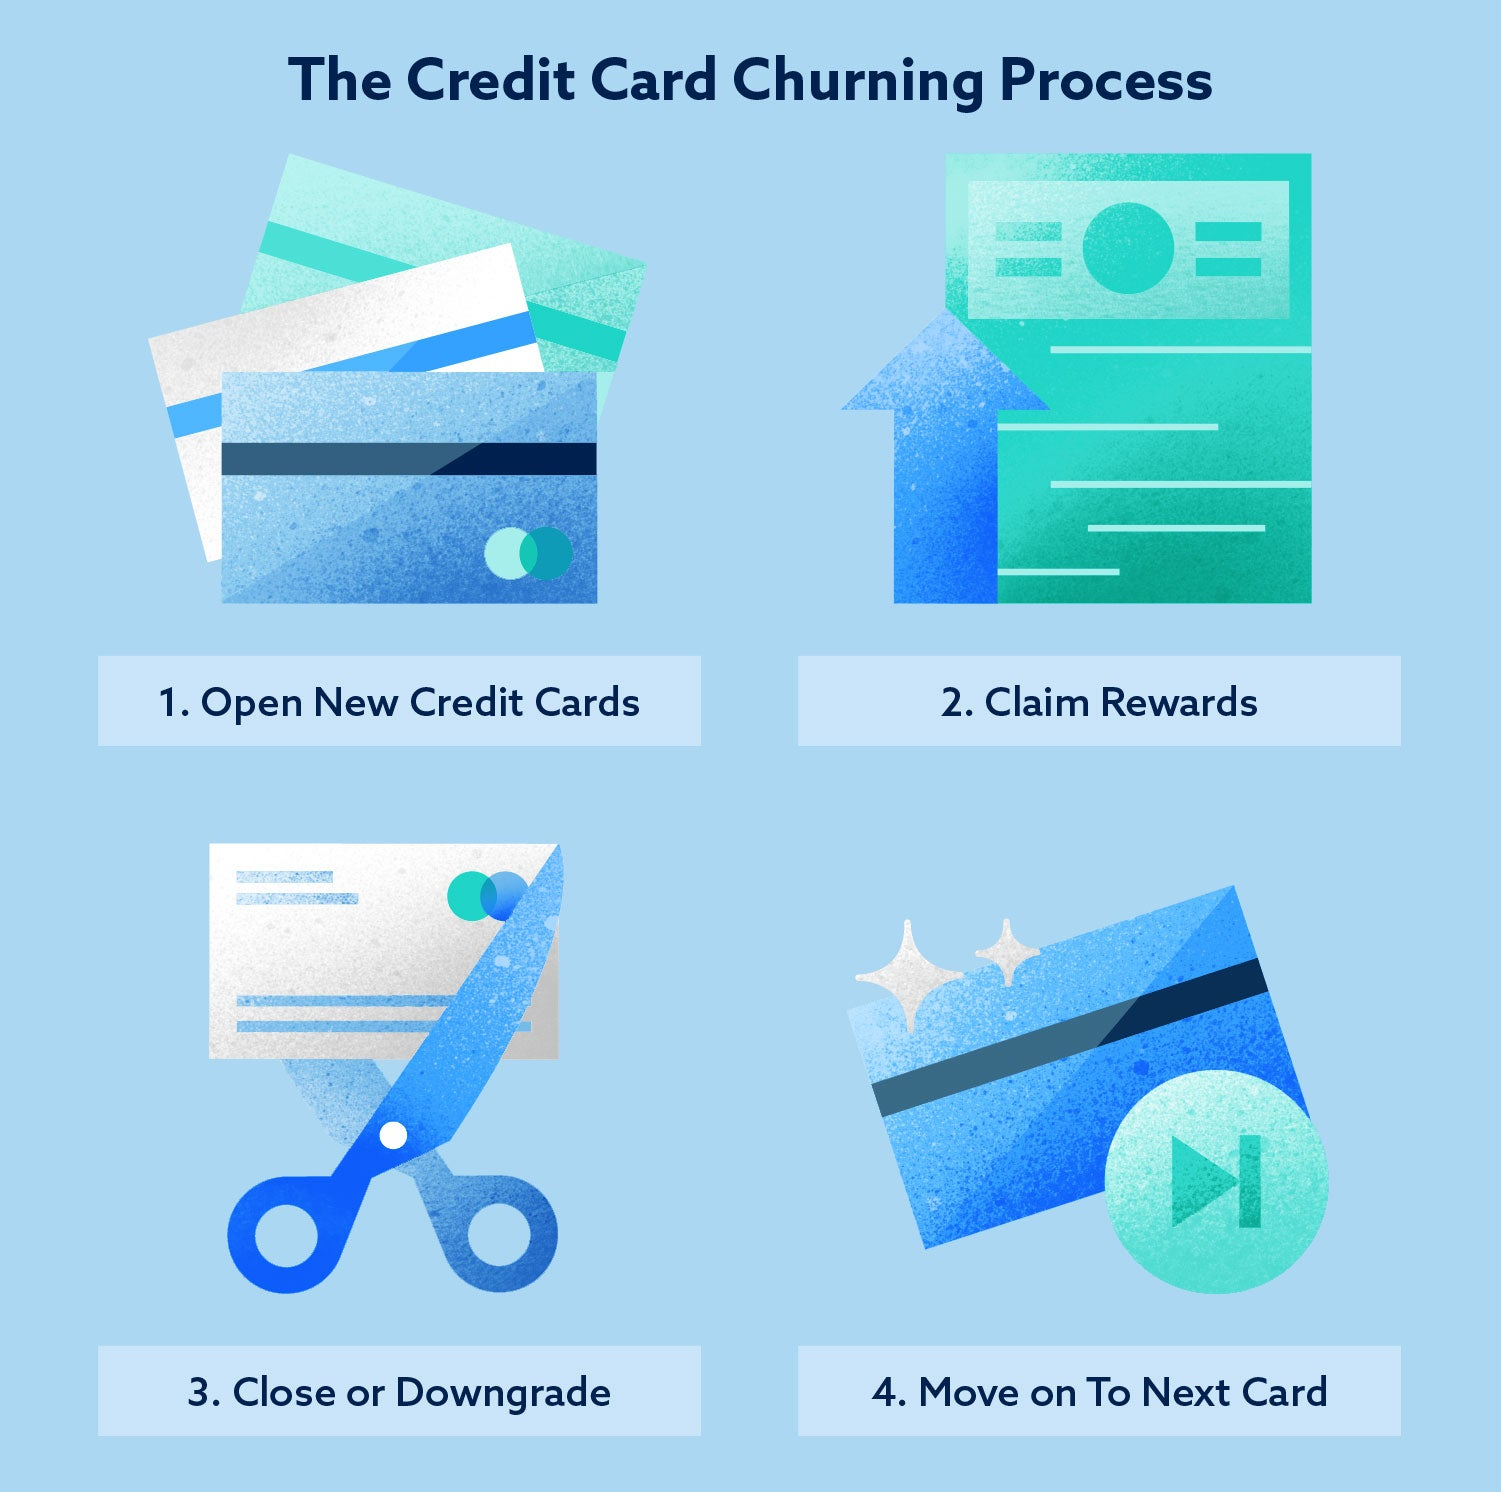 The credit card churning process image